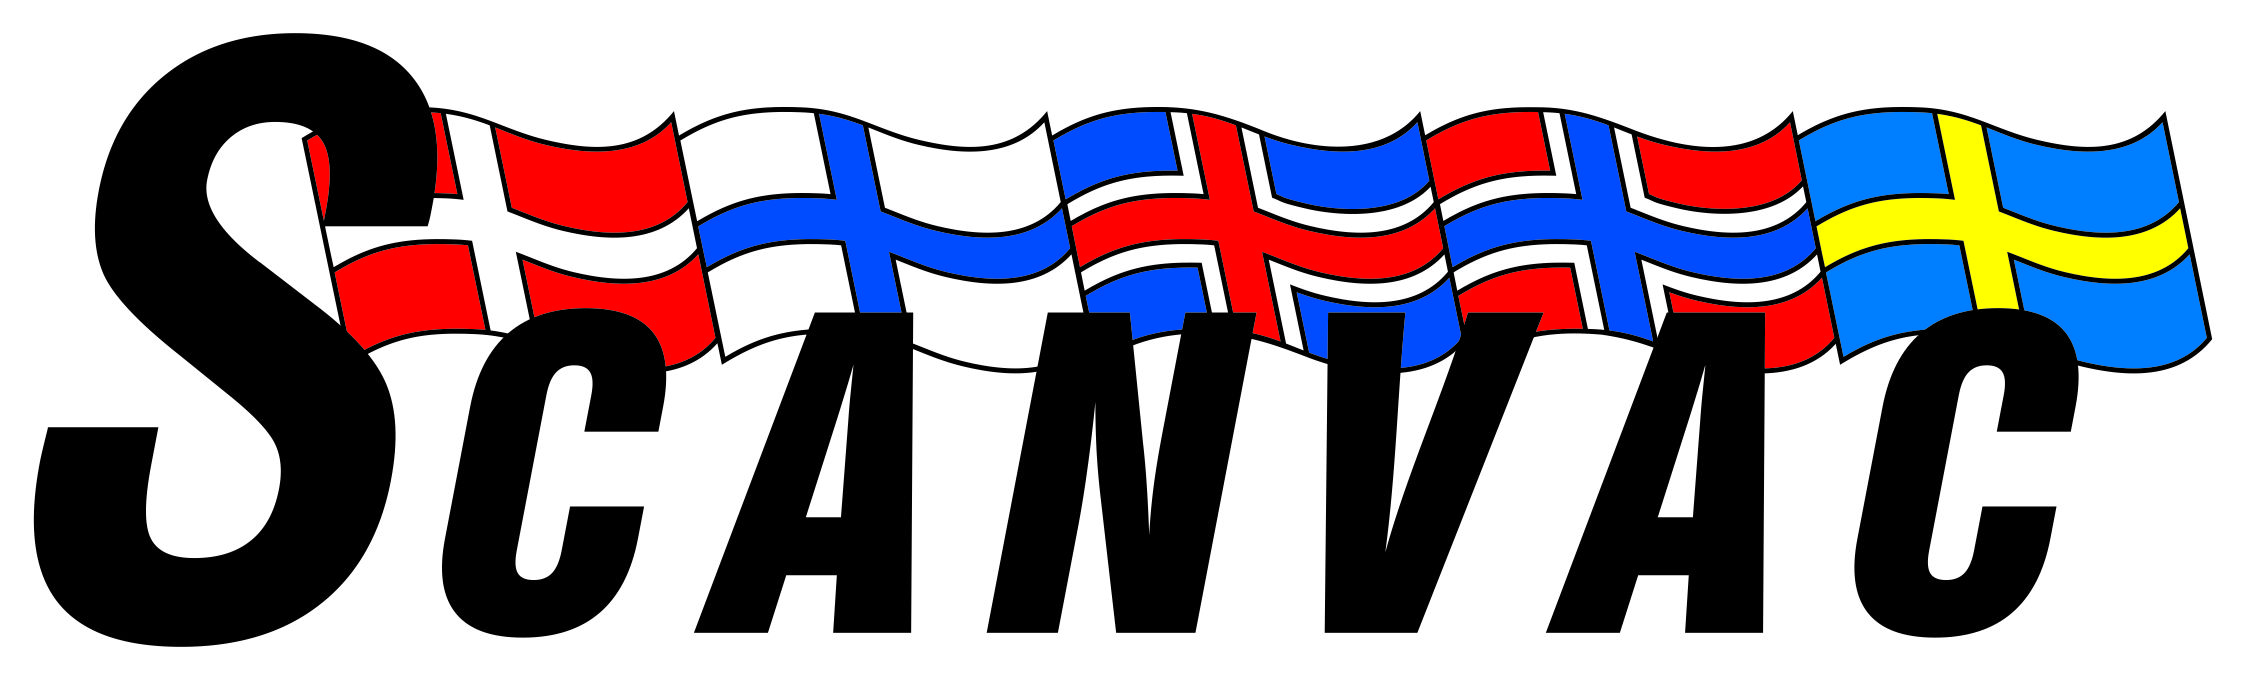 logo for Scandinavian Federation of Heating, Ventilating and Sanitary Engineering Associations